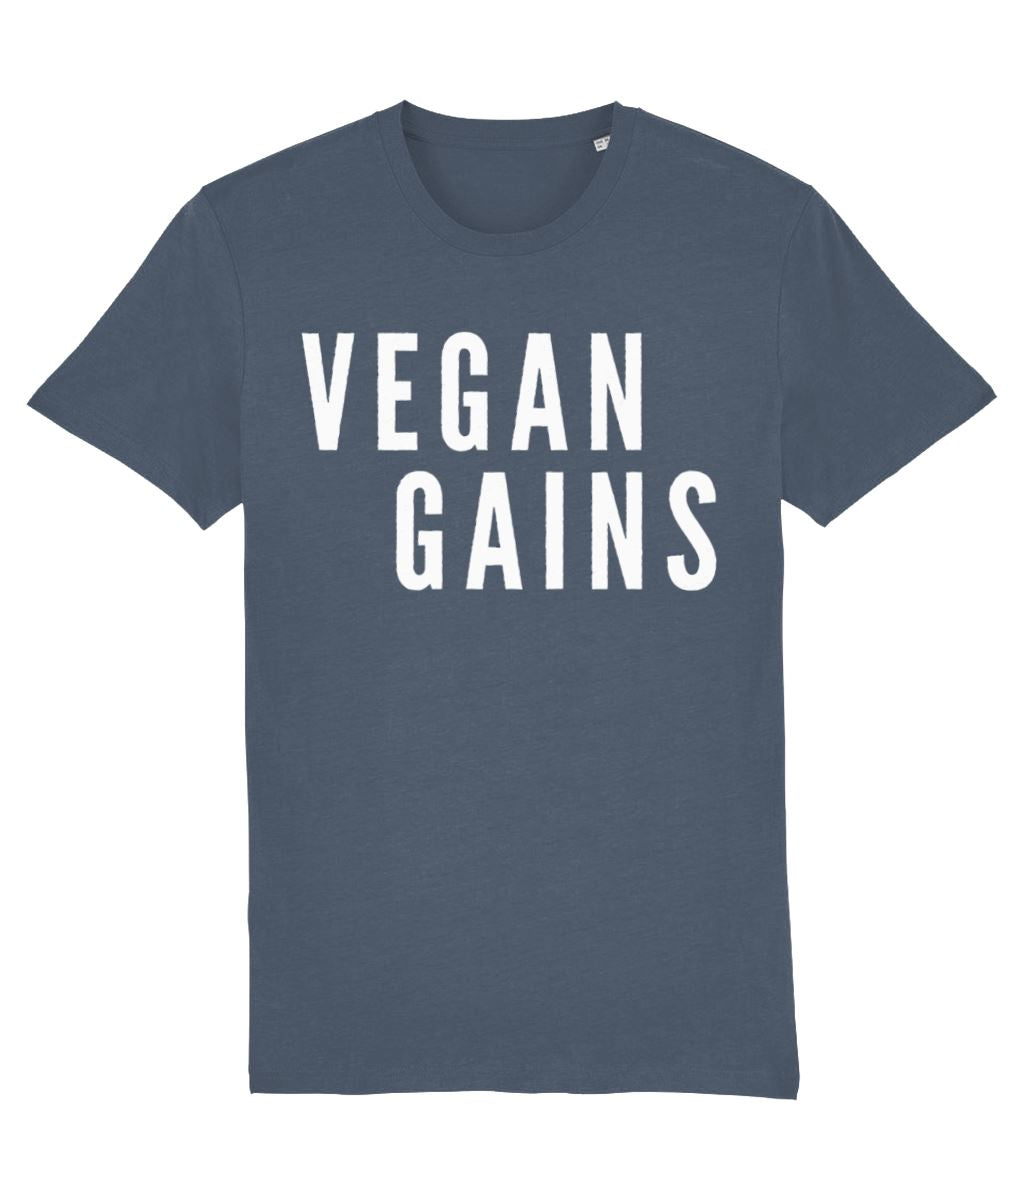 """Vegan Gains"" T-Shirt - 100% Organic Cotton (Unisex) Clothing Vegan Original Stargazer X-Small"